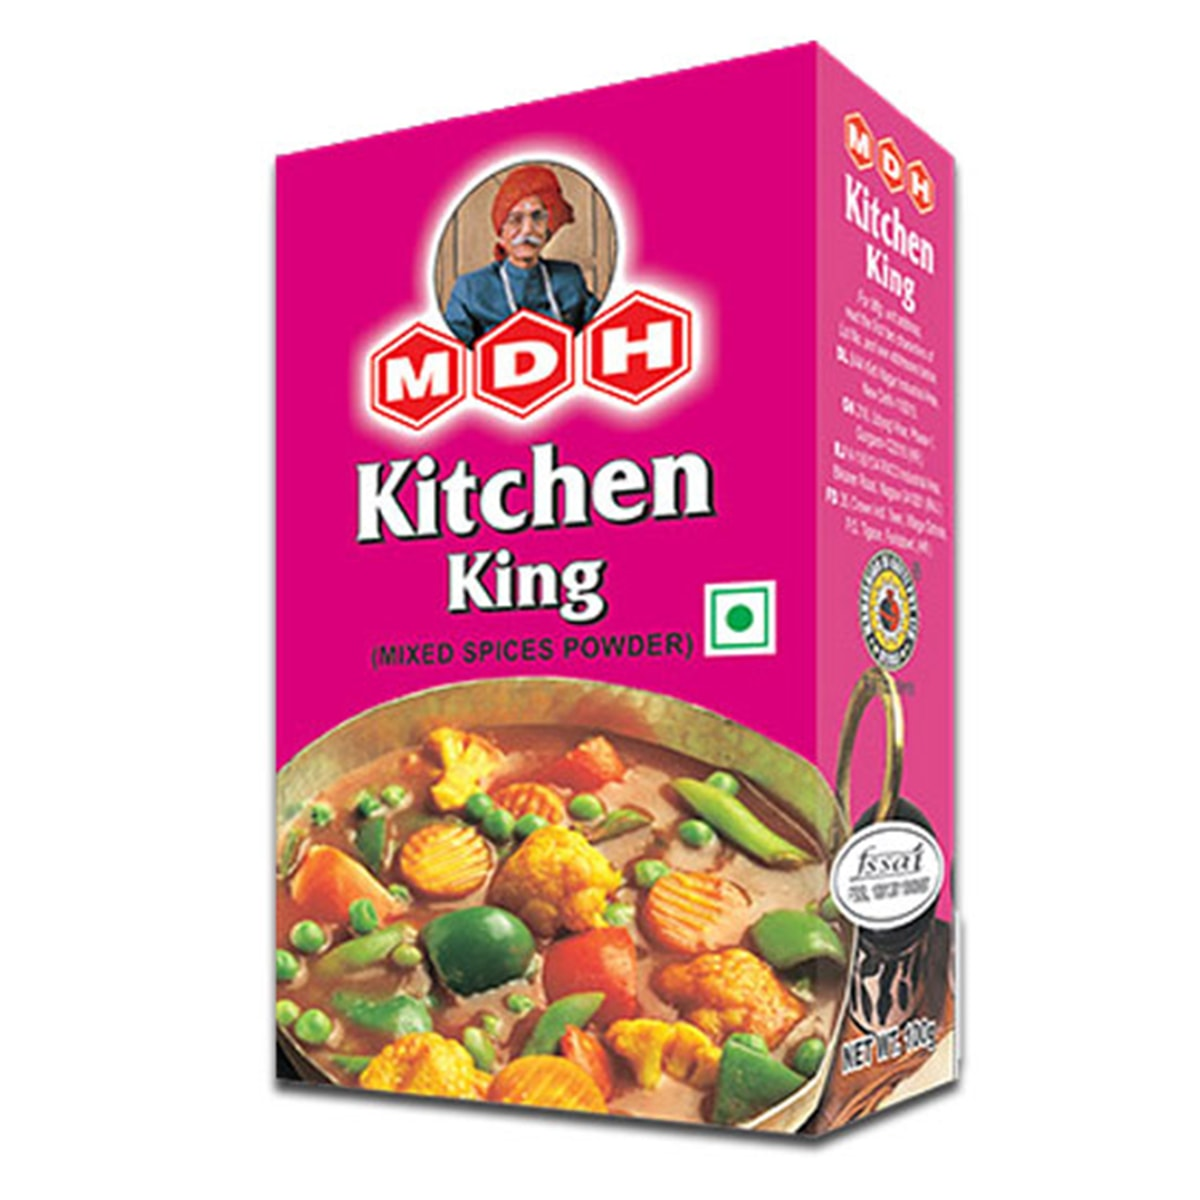 Buy MDH Kitchen King (Mixed Spices Powder) - 100 gm